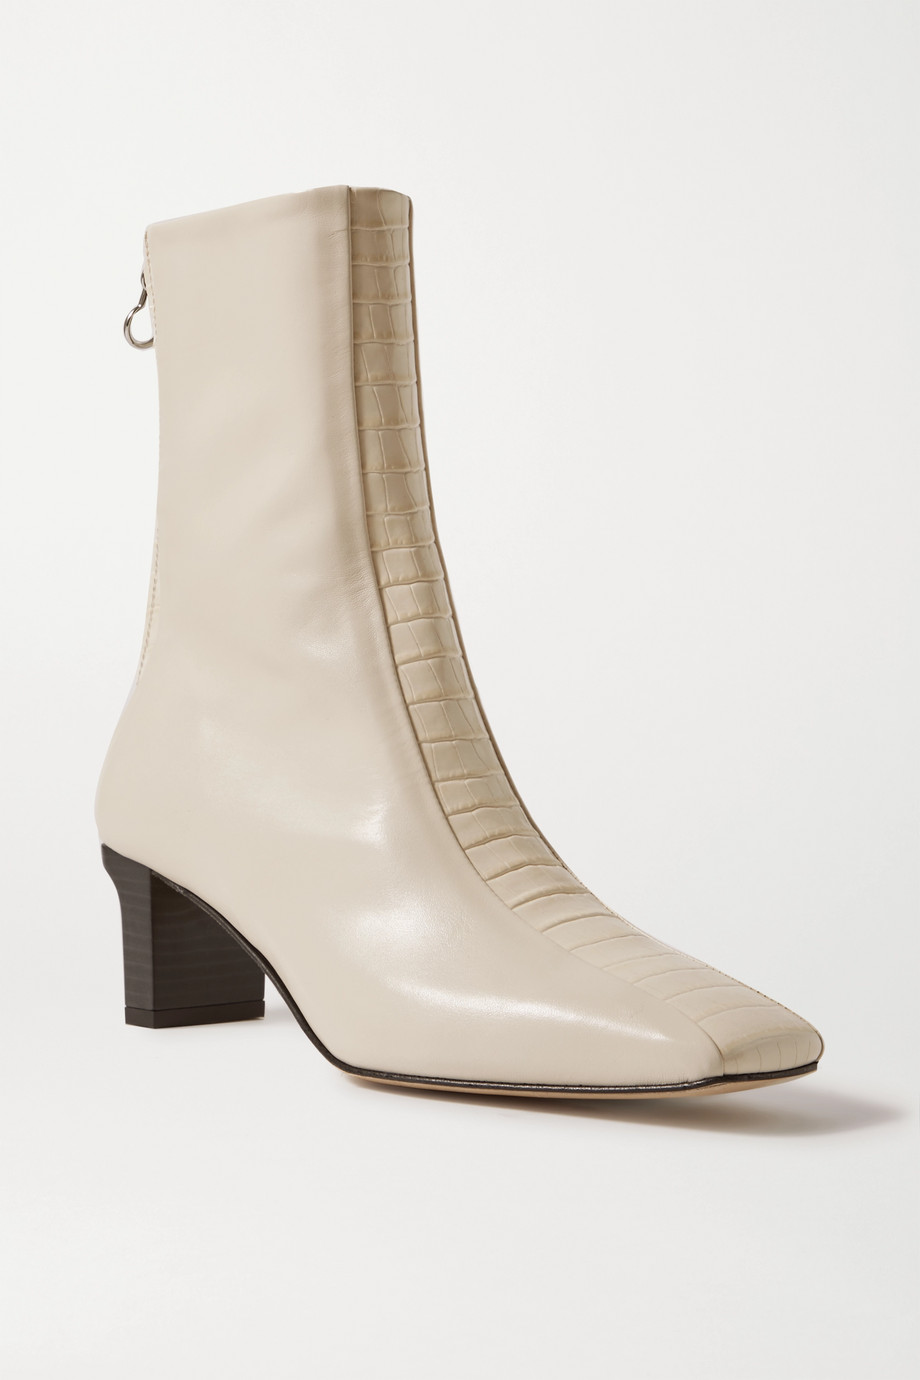 aeyde Molly paneled smooth and croc-effect leather ankle boots